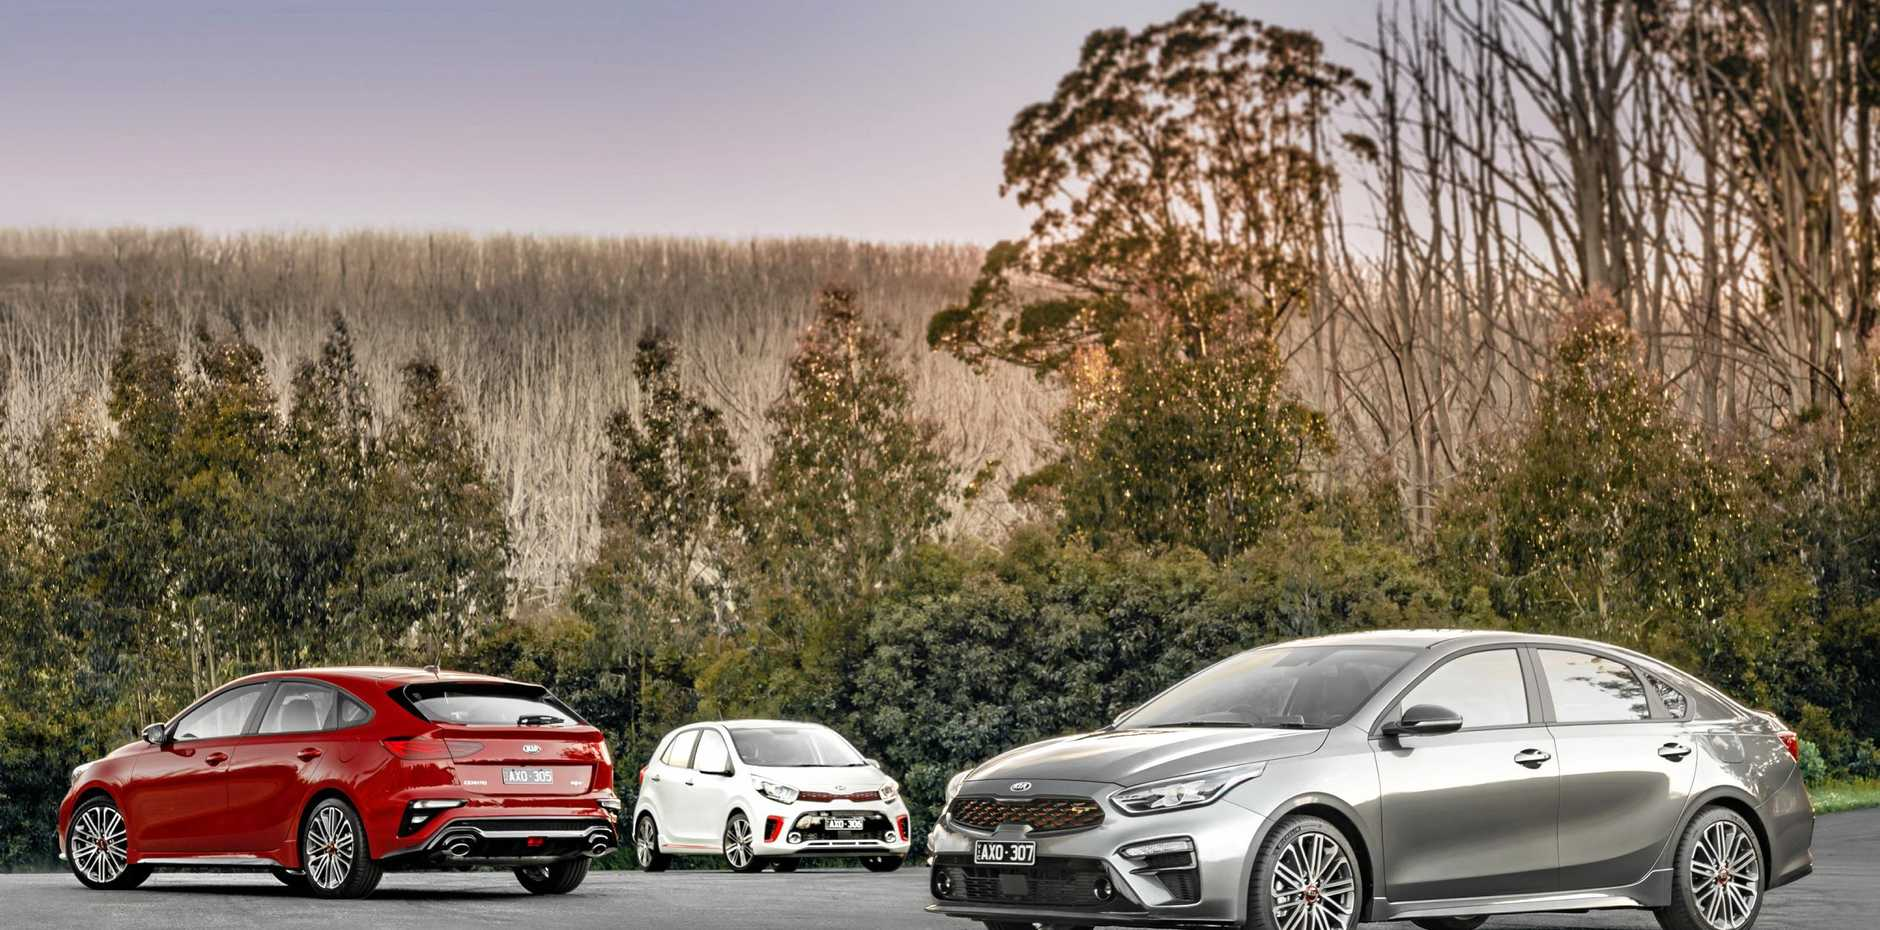 The new Kia Cerato GT in hatch and sedan guise, as well as the new Picanto GT (centre).